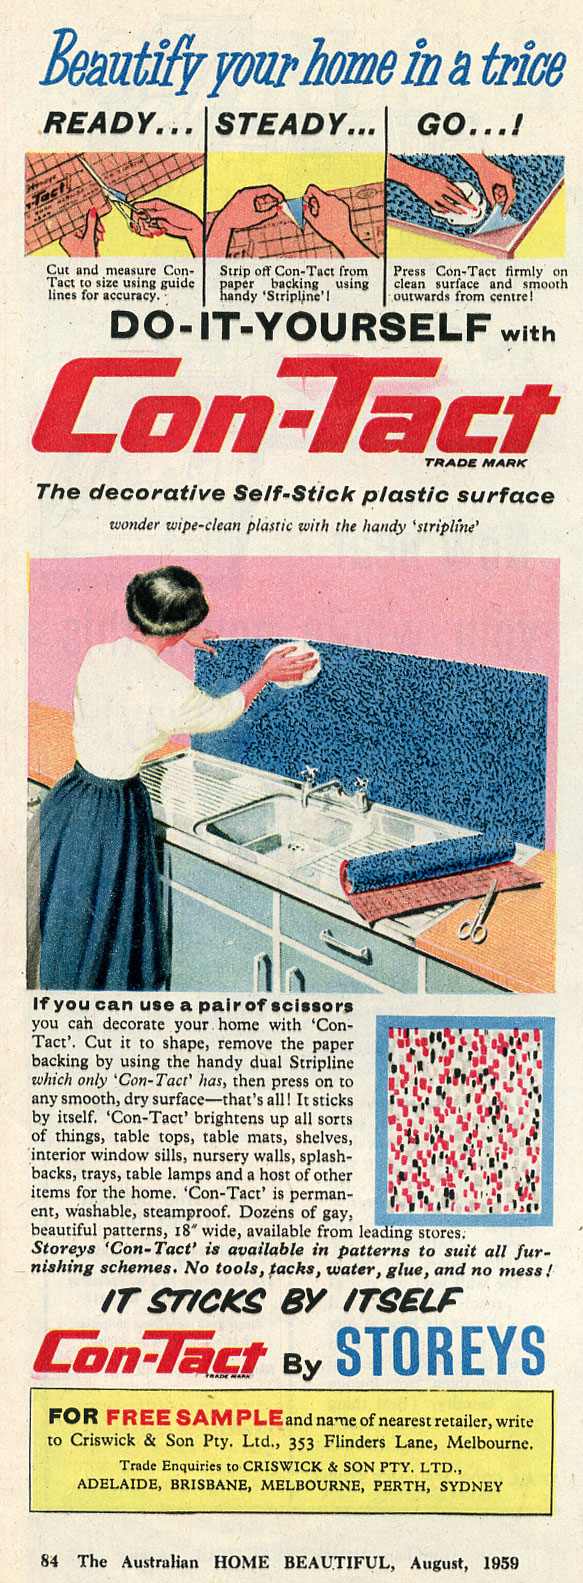 Magazine ad from 1959 extolling virtues of sticky ConTact for home decorating